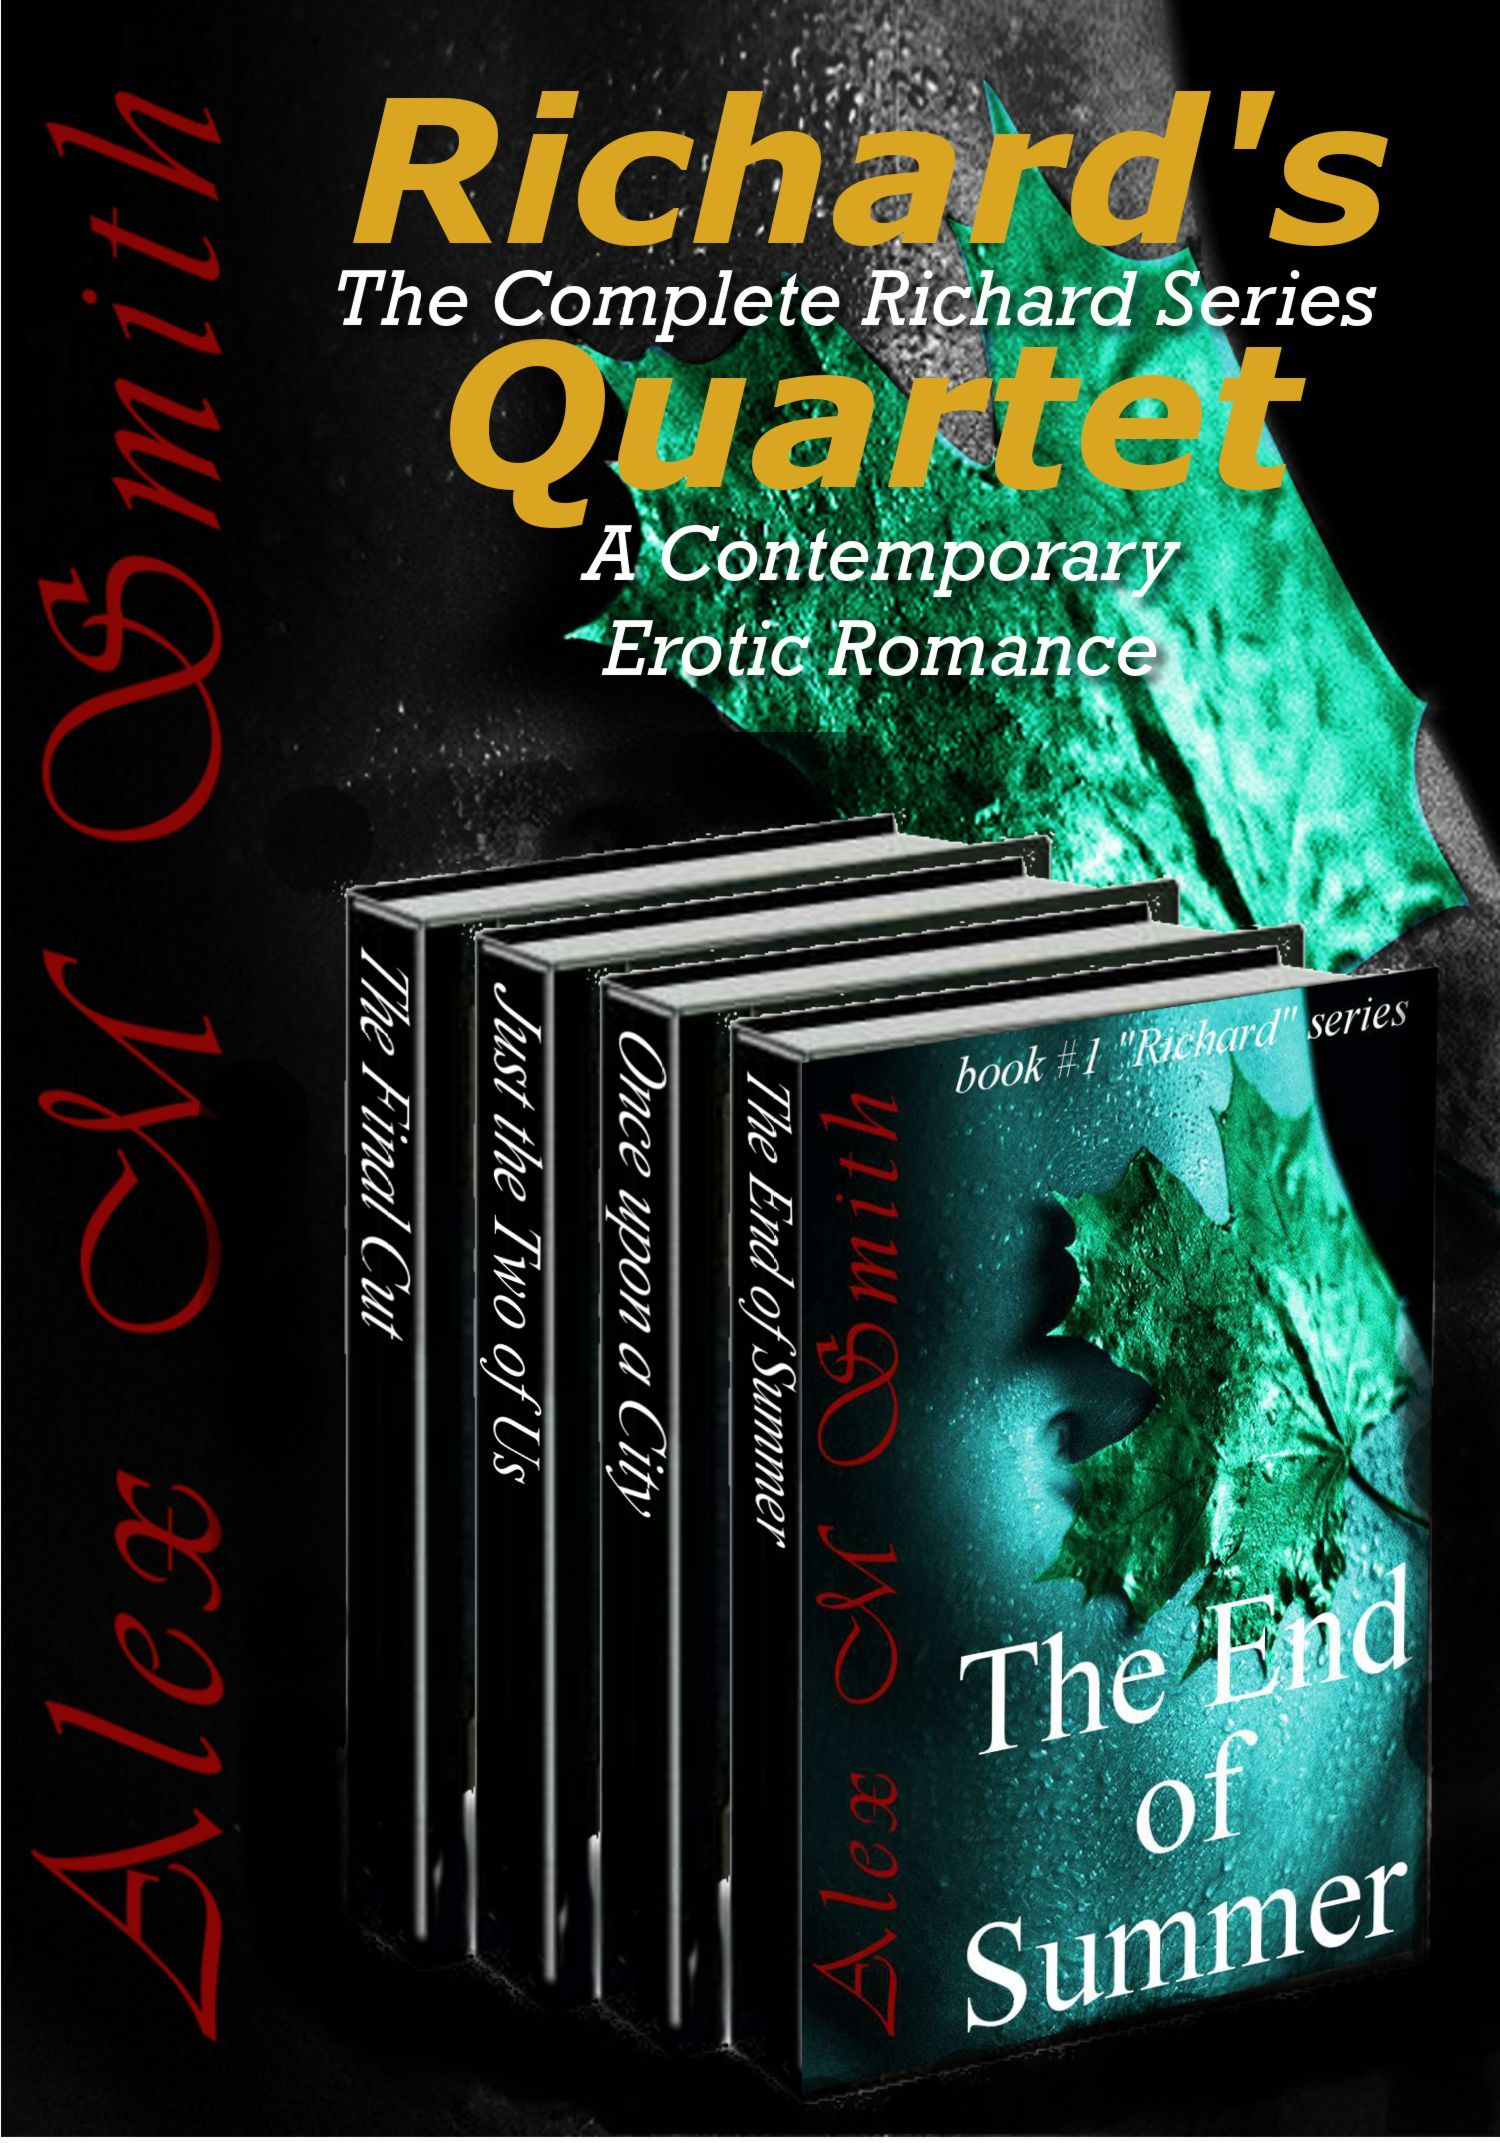 Richard's Quartet (The Complete Richard Series - Books 1-4)